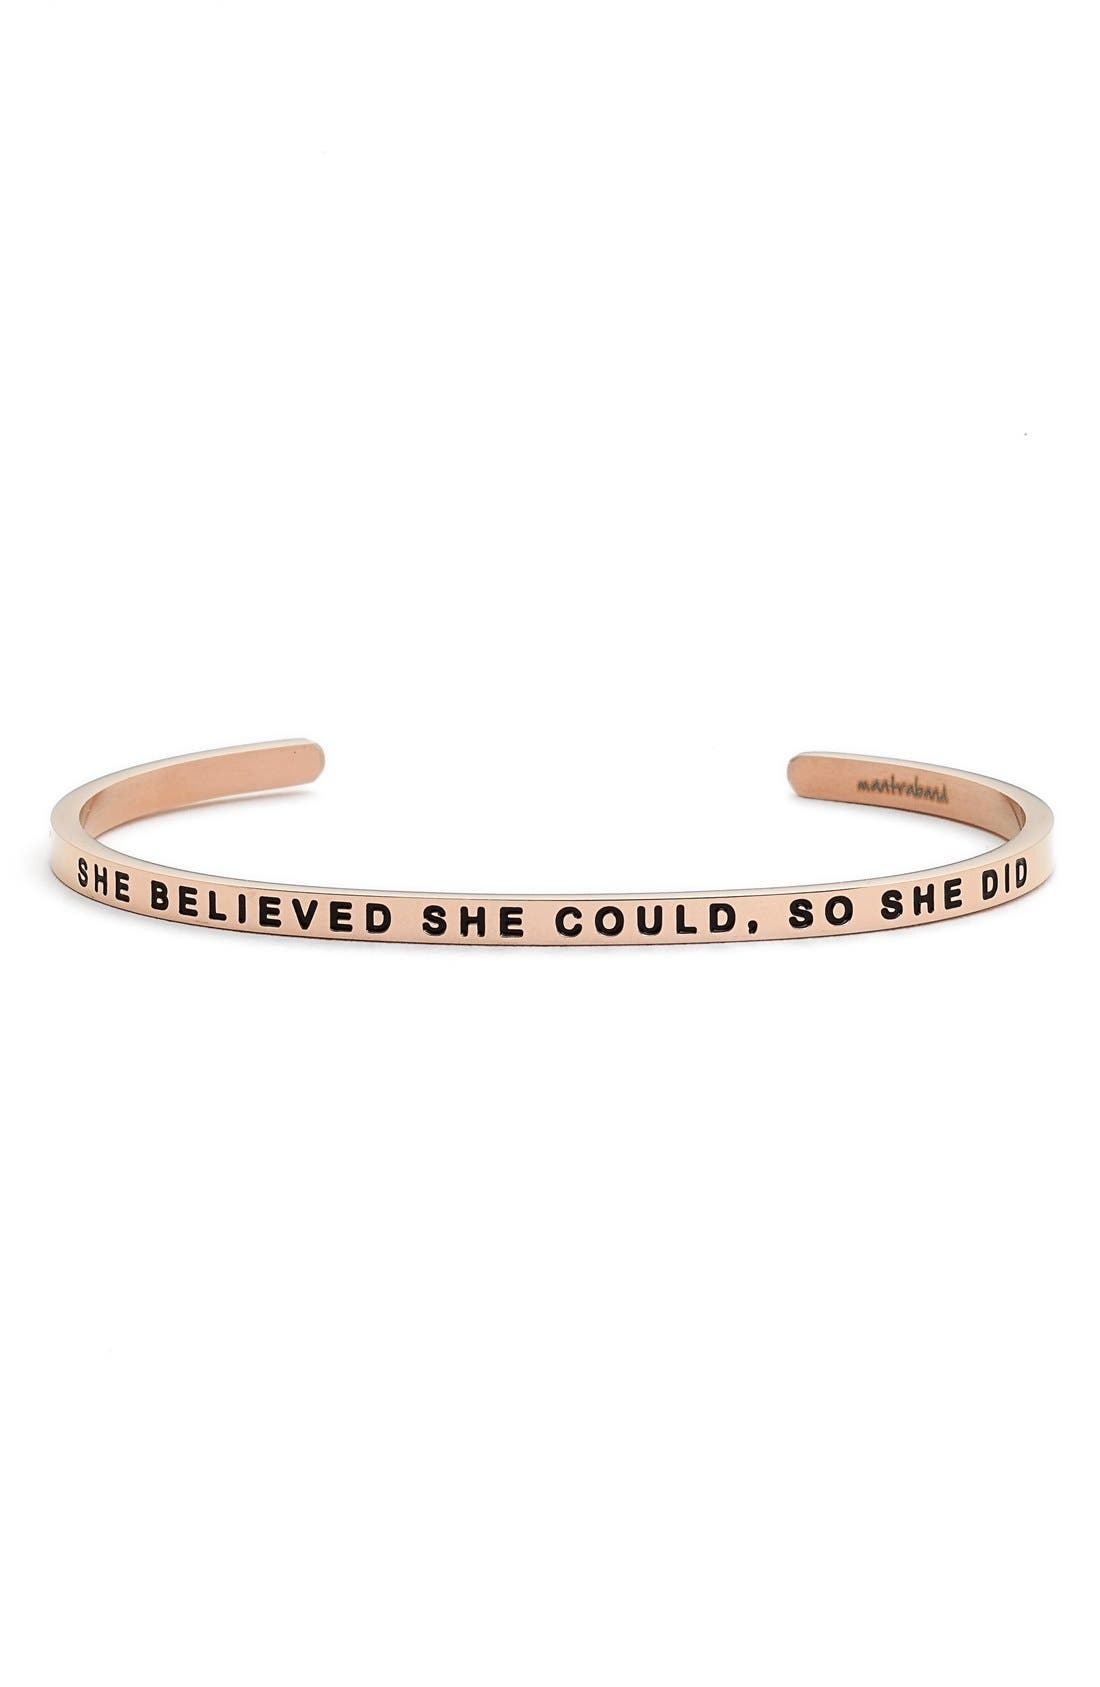 MANTRABAND She Believed She Could Cuff